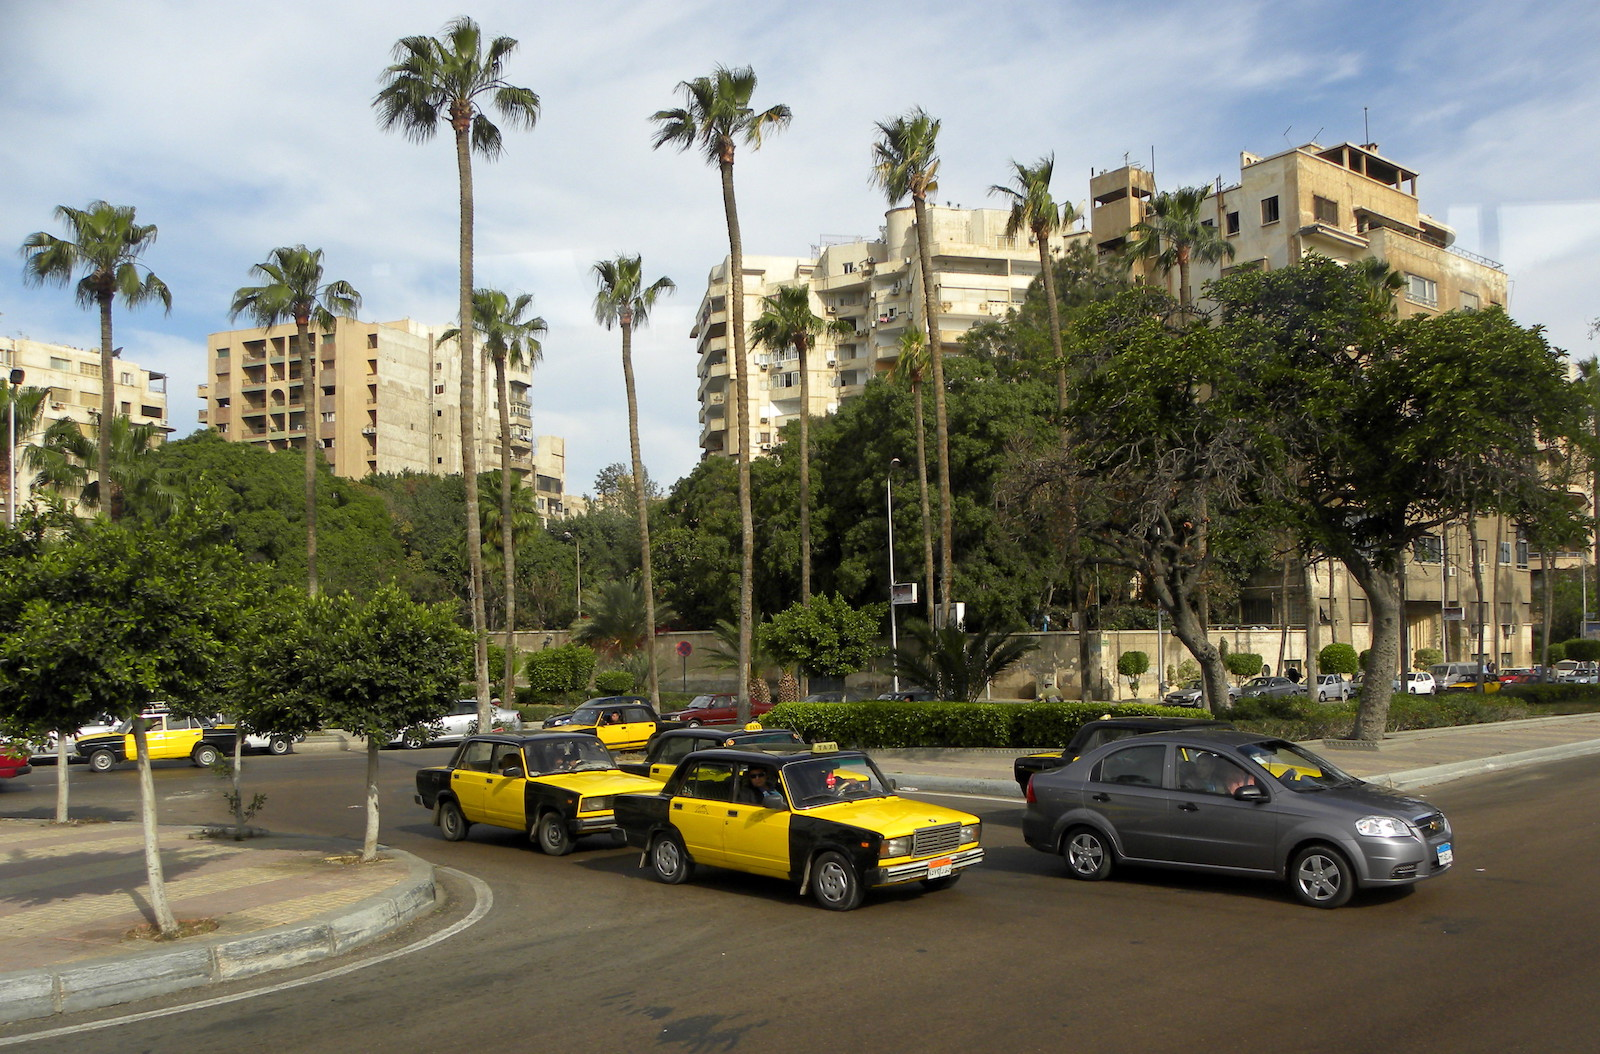 Taxis and Palms Alexandria, Egypt